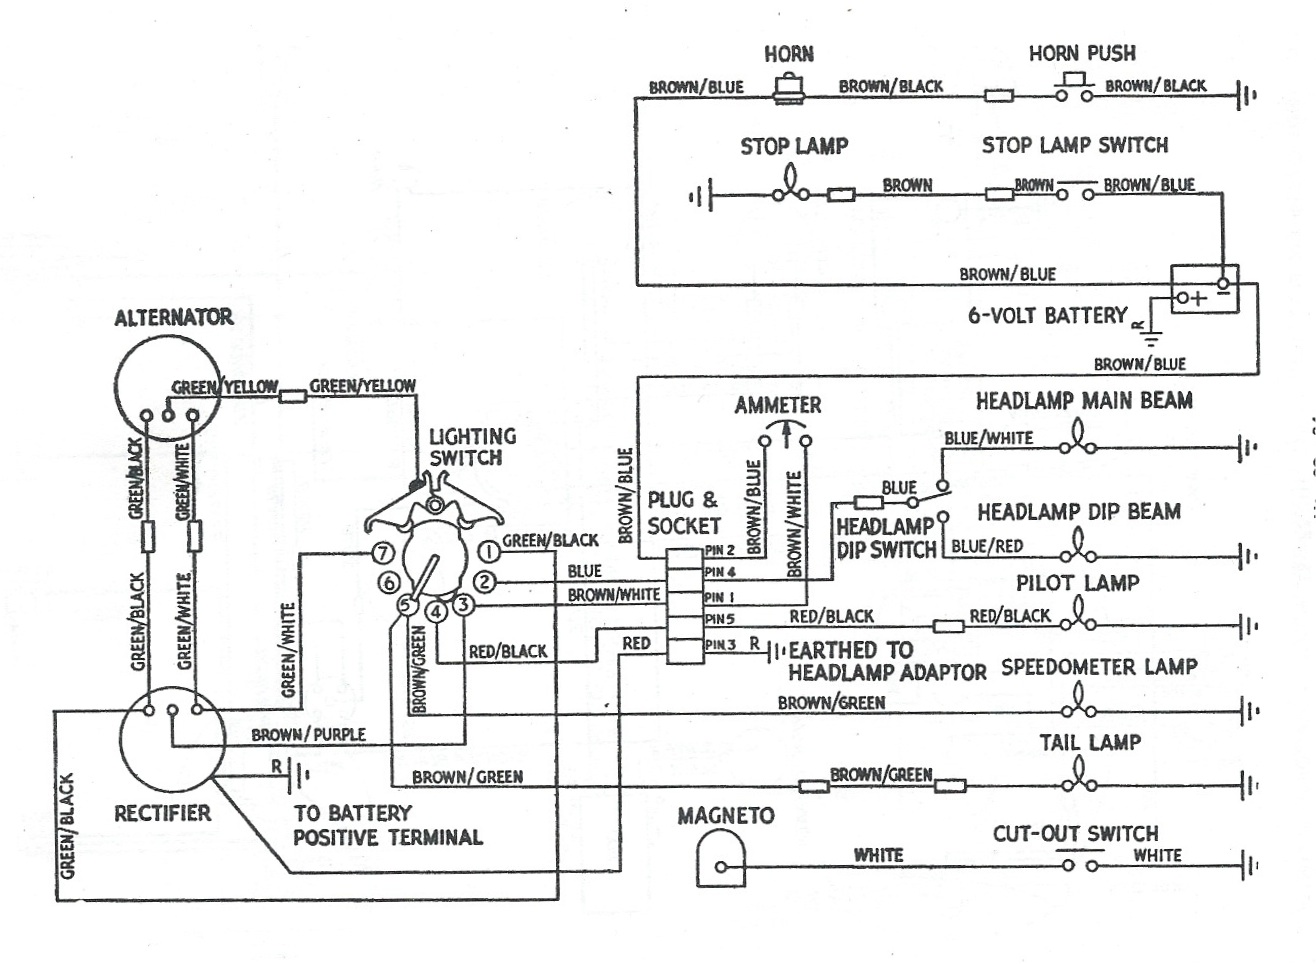 1971 triumph tr6 wiring diagram labelled of pride barbados flower 1974 31 images